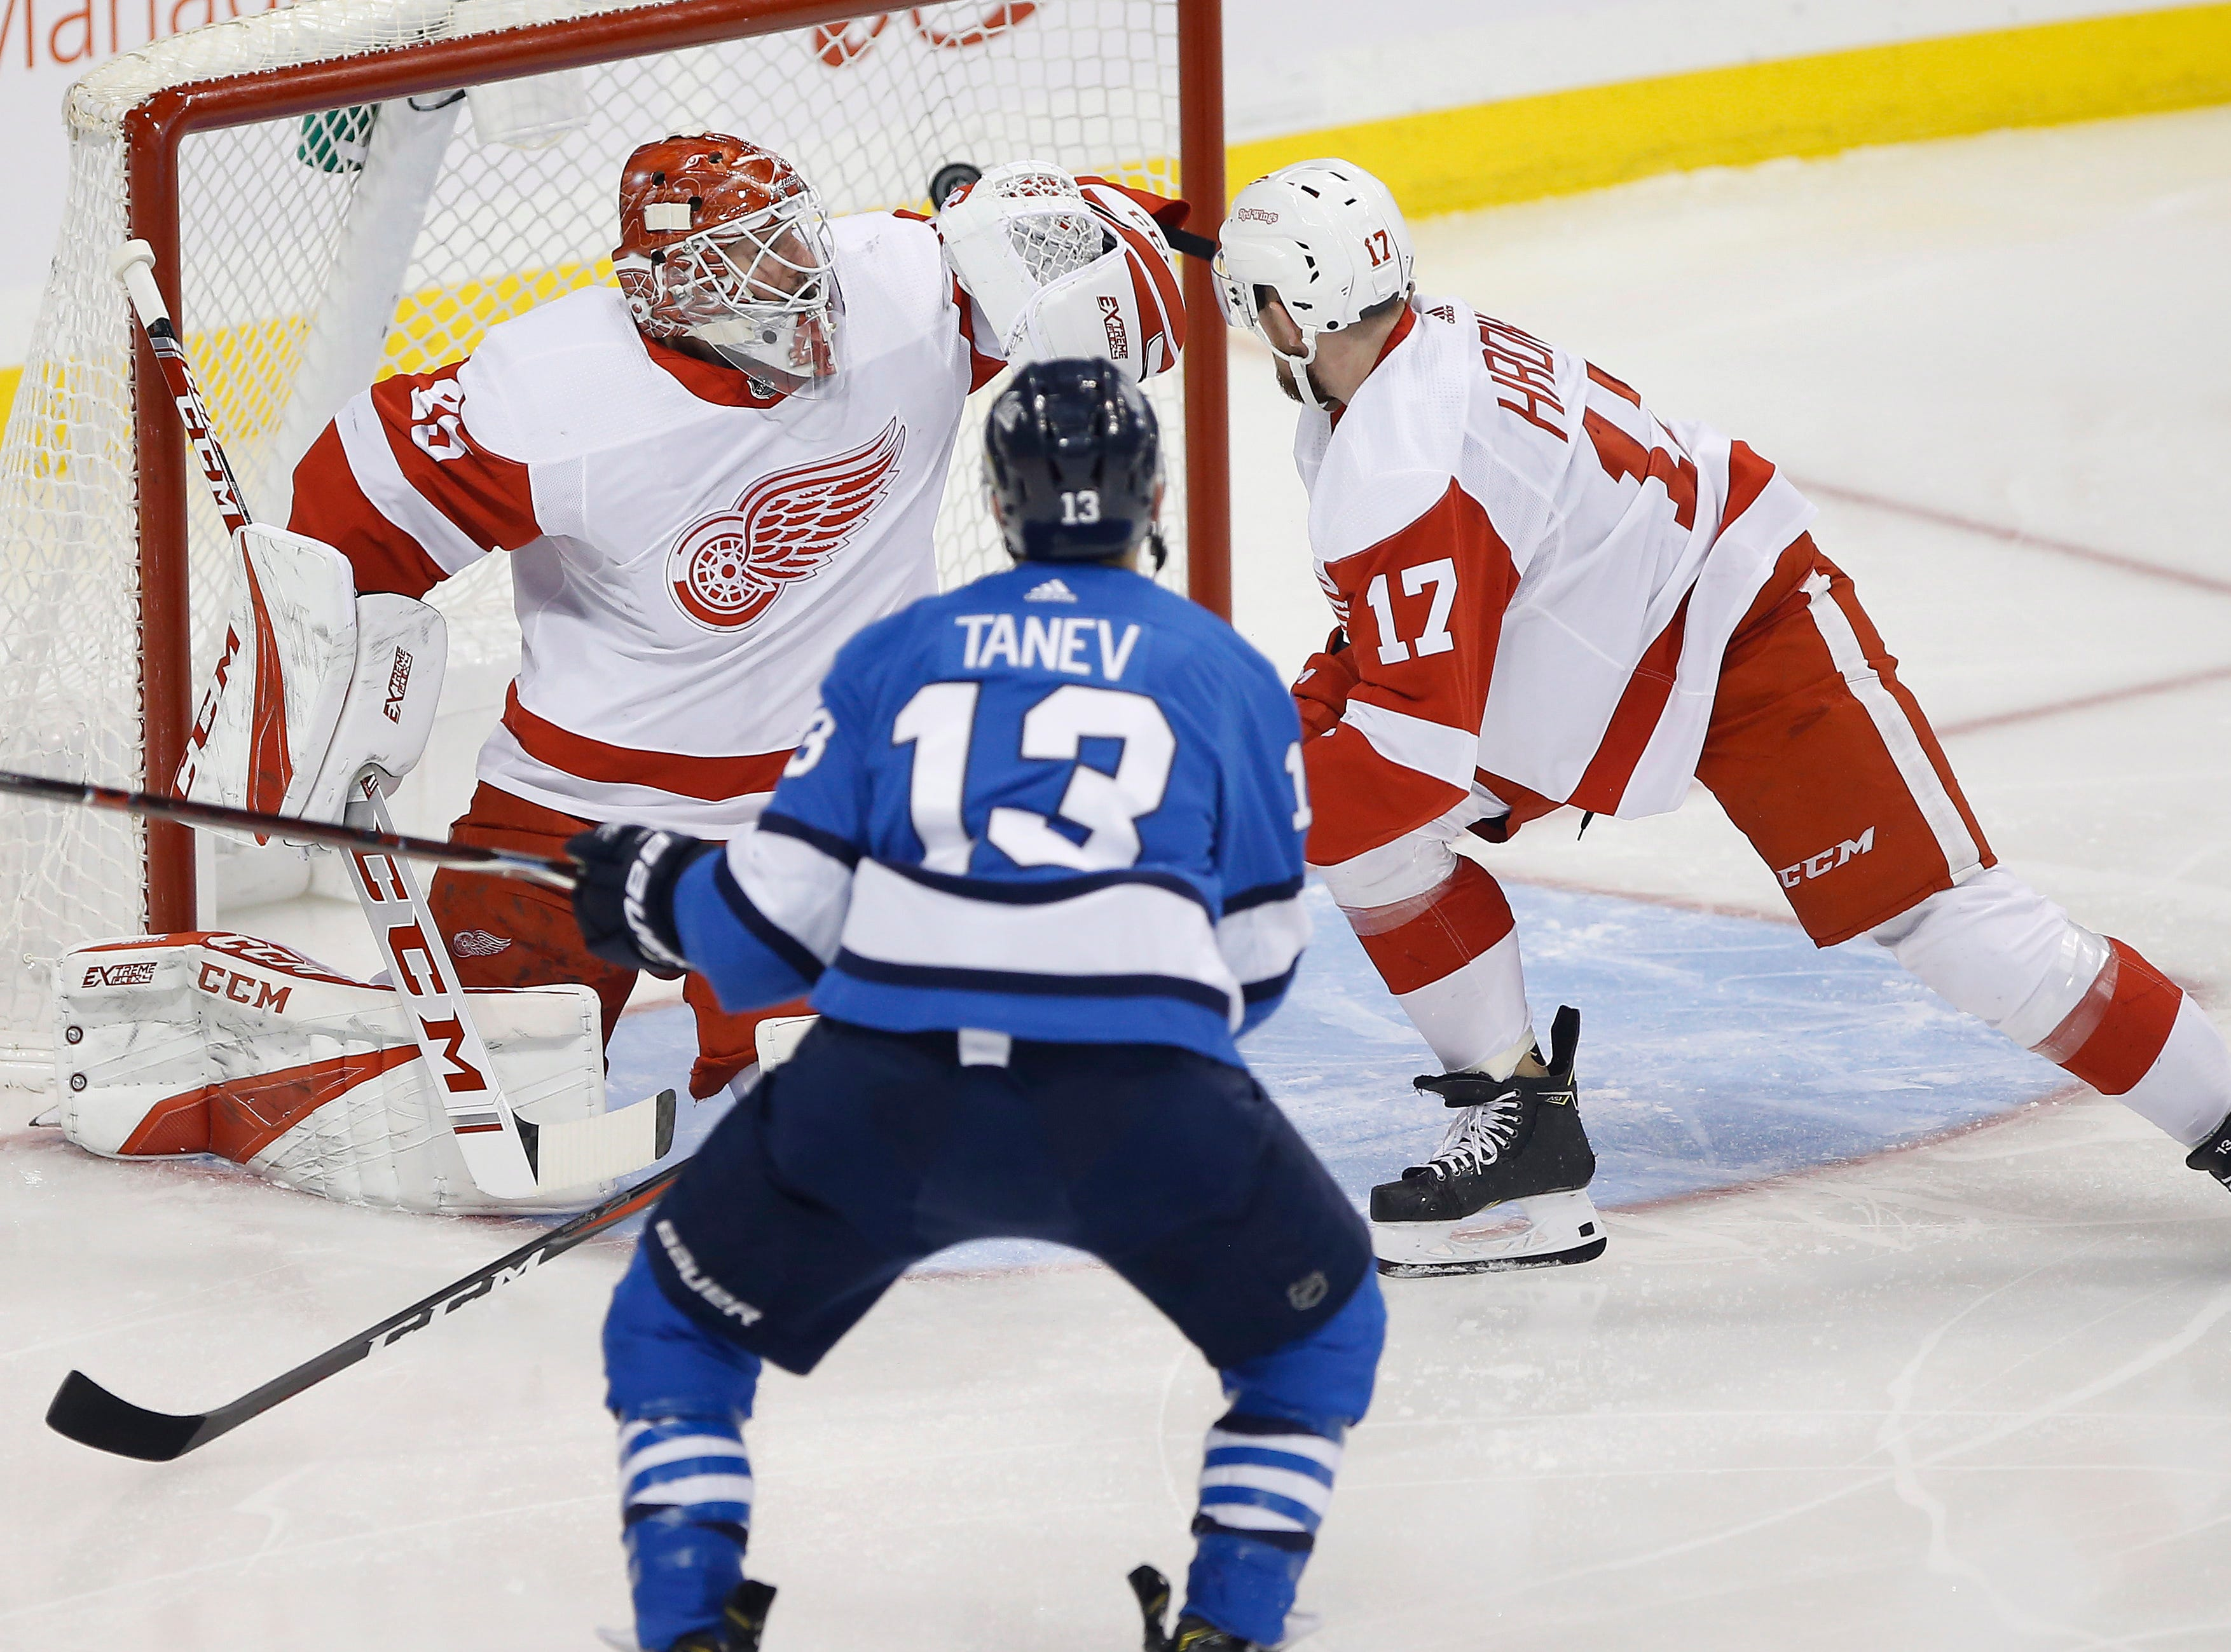 Winnipeg Jets' Brandon Tanev (13) scores on Detroit Red Wings goaltender Jonathan Bernier (45) as Filip Hronek (17) defends in the opening minute of an NHL hockey game Friday, Jan. 11, 2019, in Winnipeg, Manitoba. The Jets defeated the Red Wings 4-2.